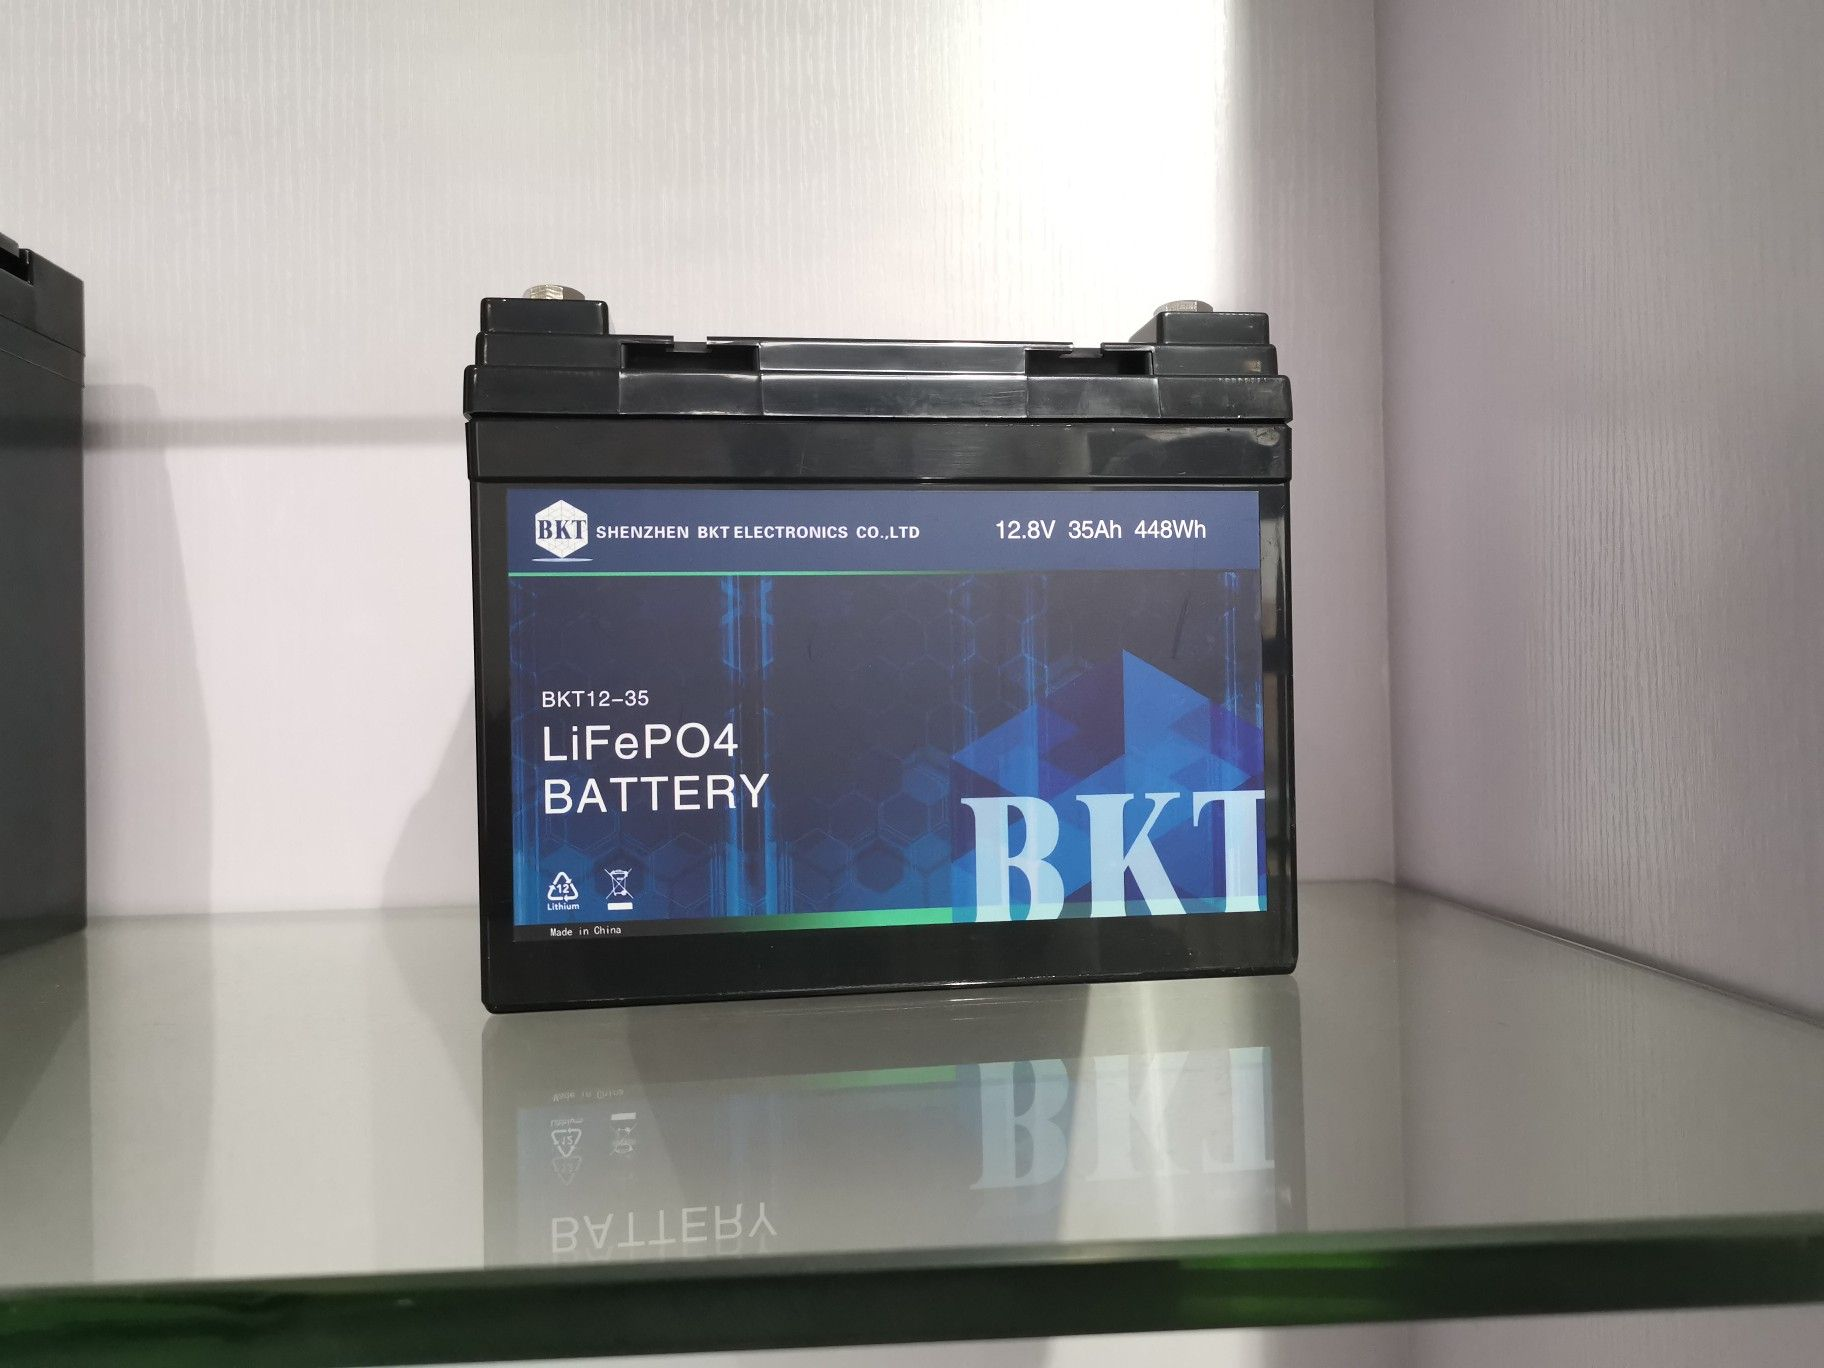 12v 35ah Battery For Enery Storage In 2020 Waterproof Flatscreen Tv Electronic Products